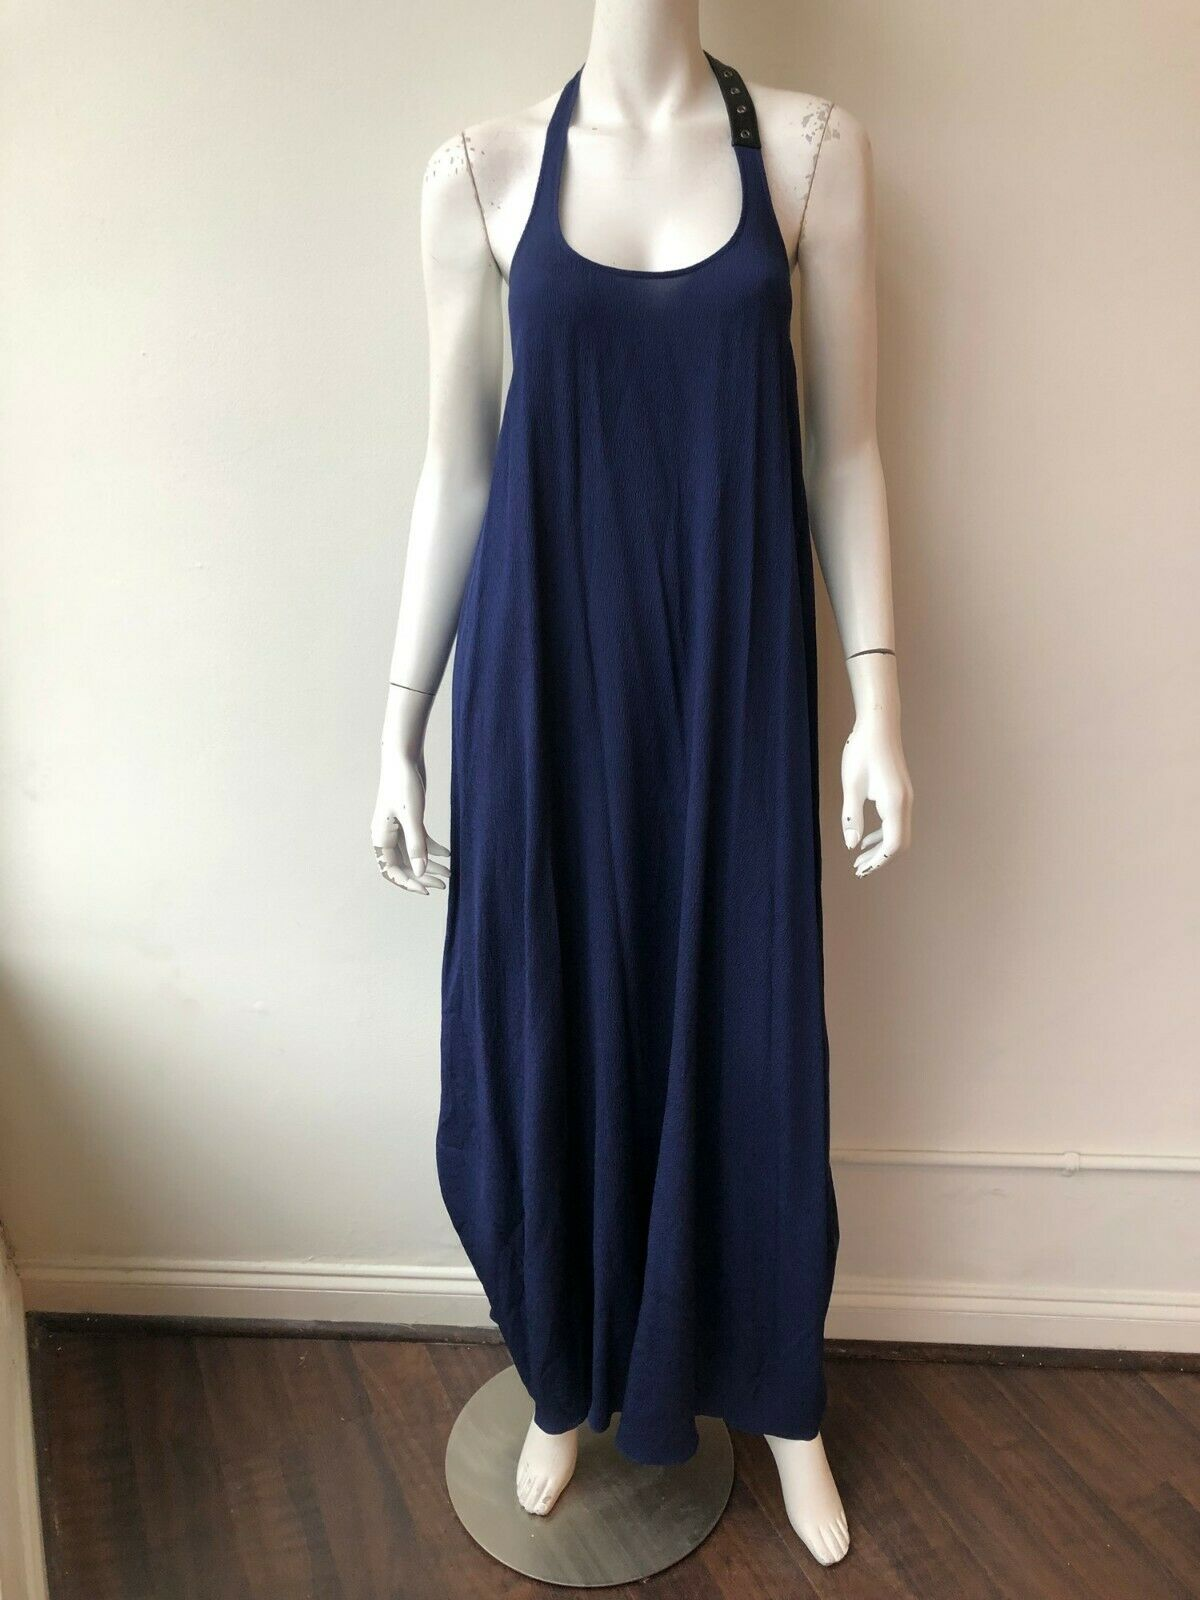 Chris Gramer Long Blau Dress with Leather Detailing Open Back Größe Medium